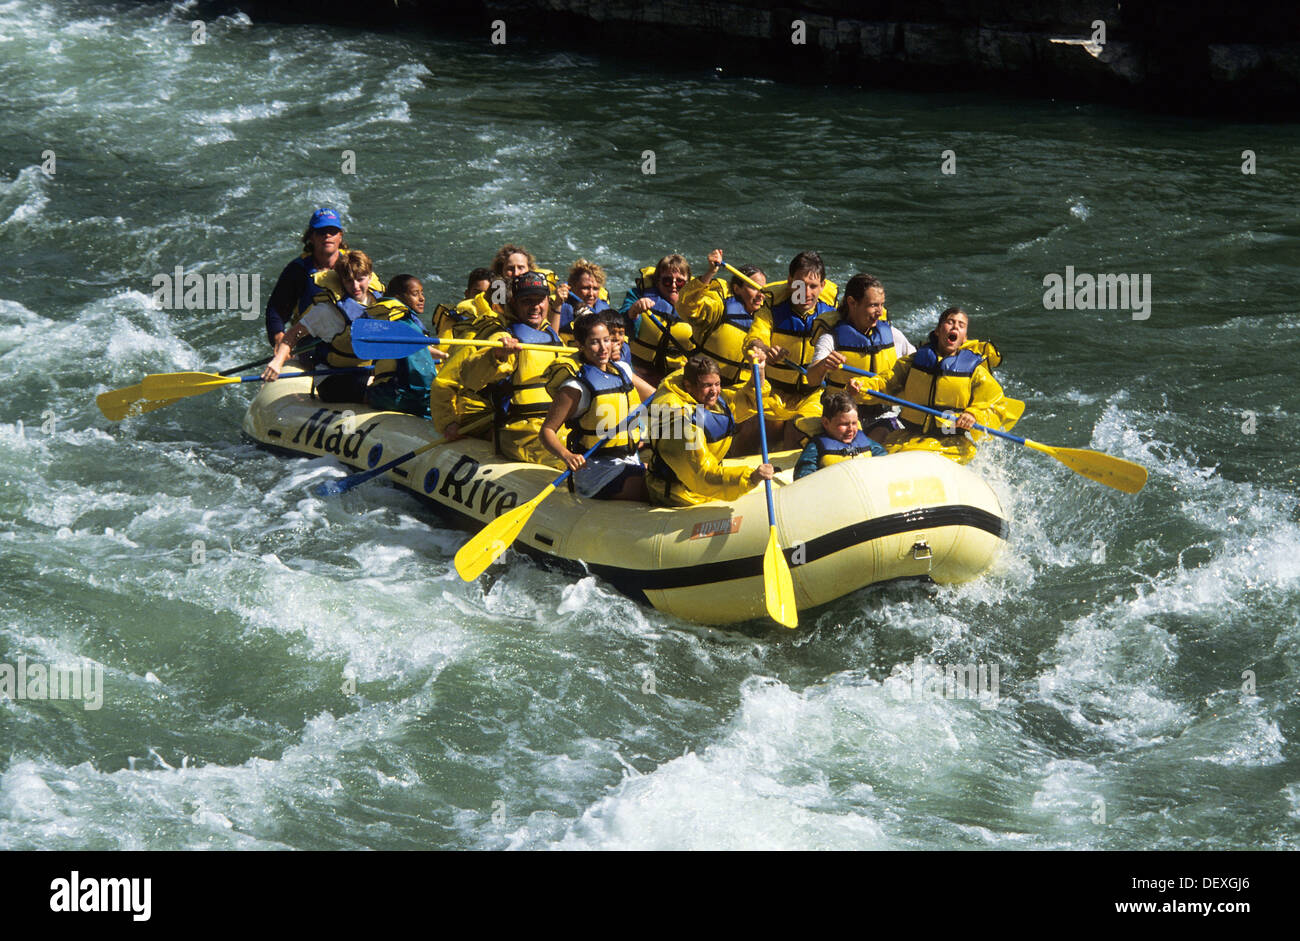 Elk266-1259, Wyoming Jackson Hole, Snake River, whitewater rafting Banque D'Images